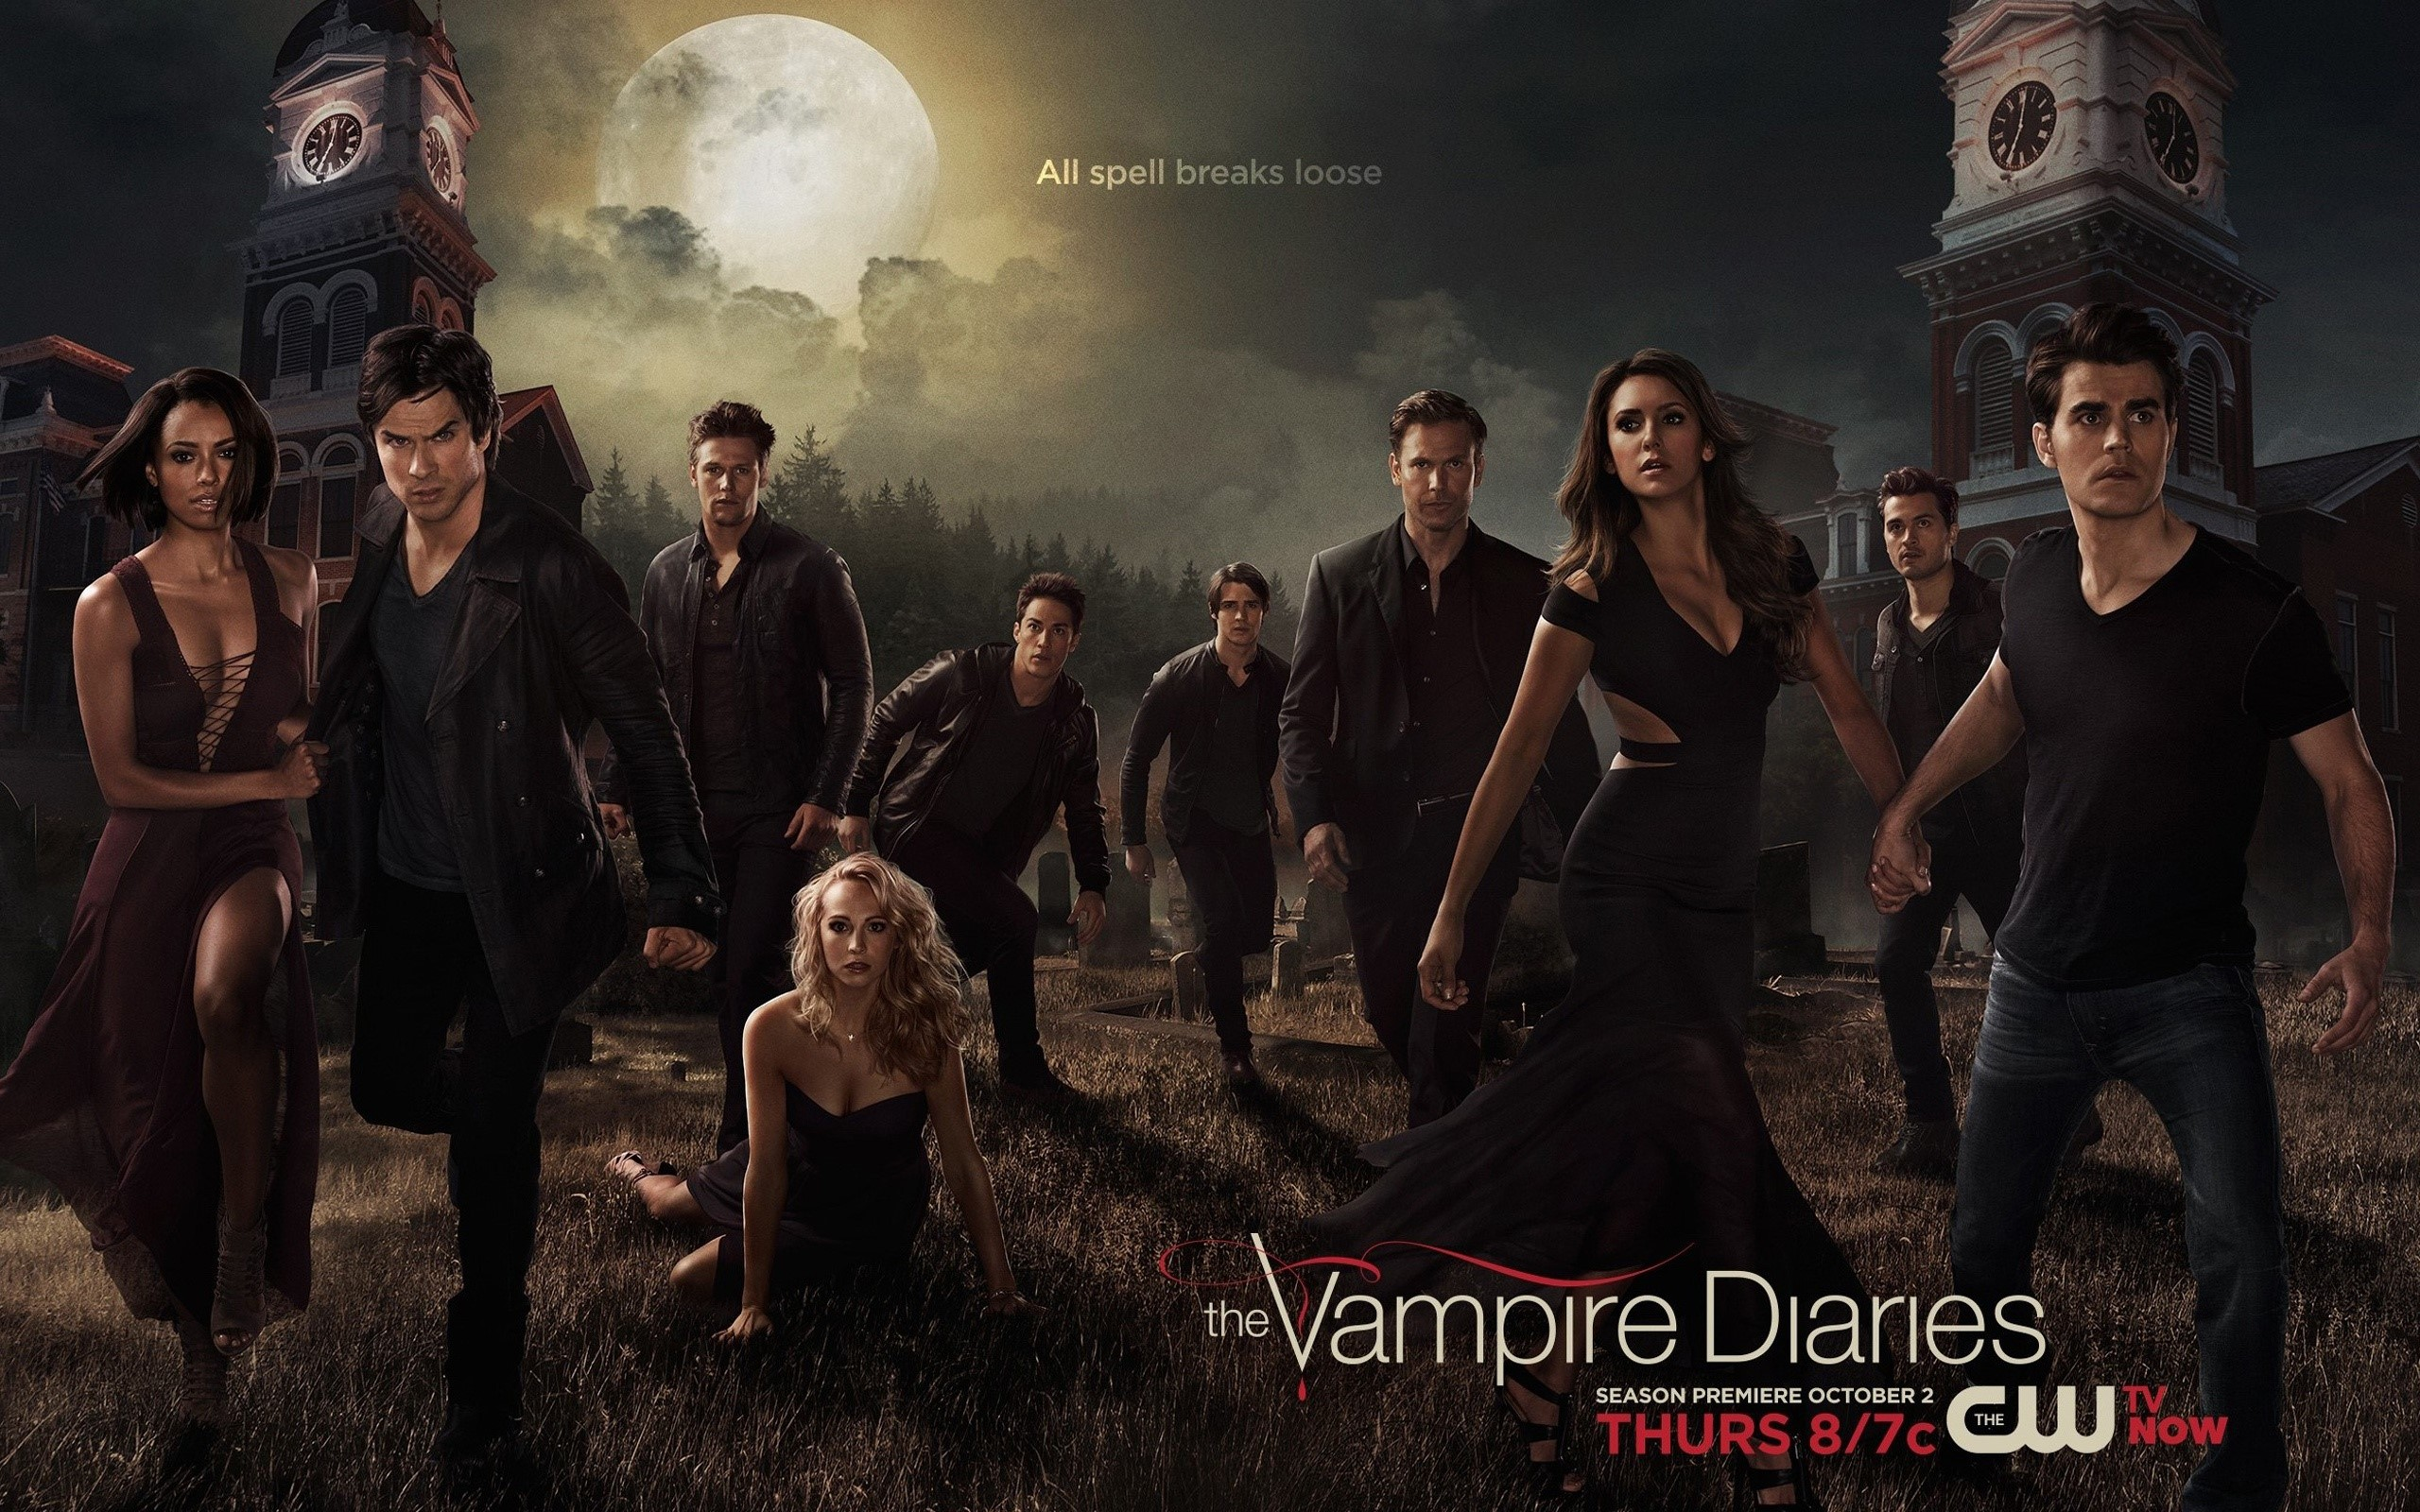 Wallpaper The vampire Diaries still of season 6